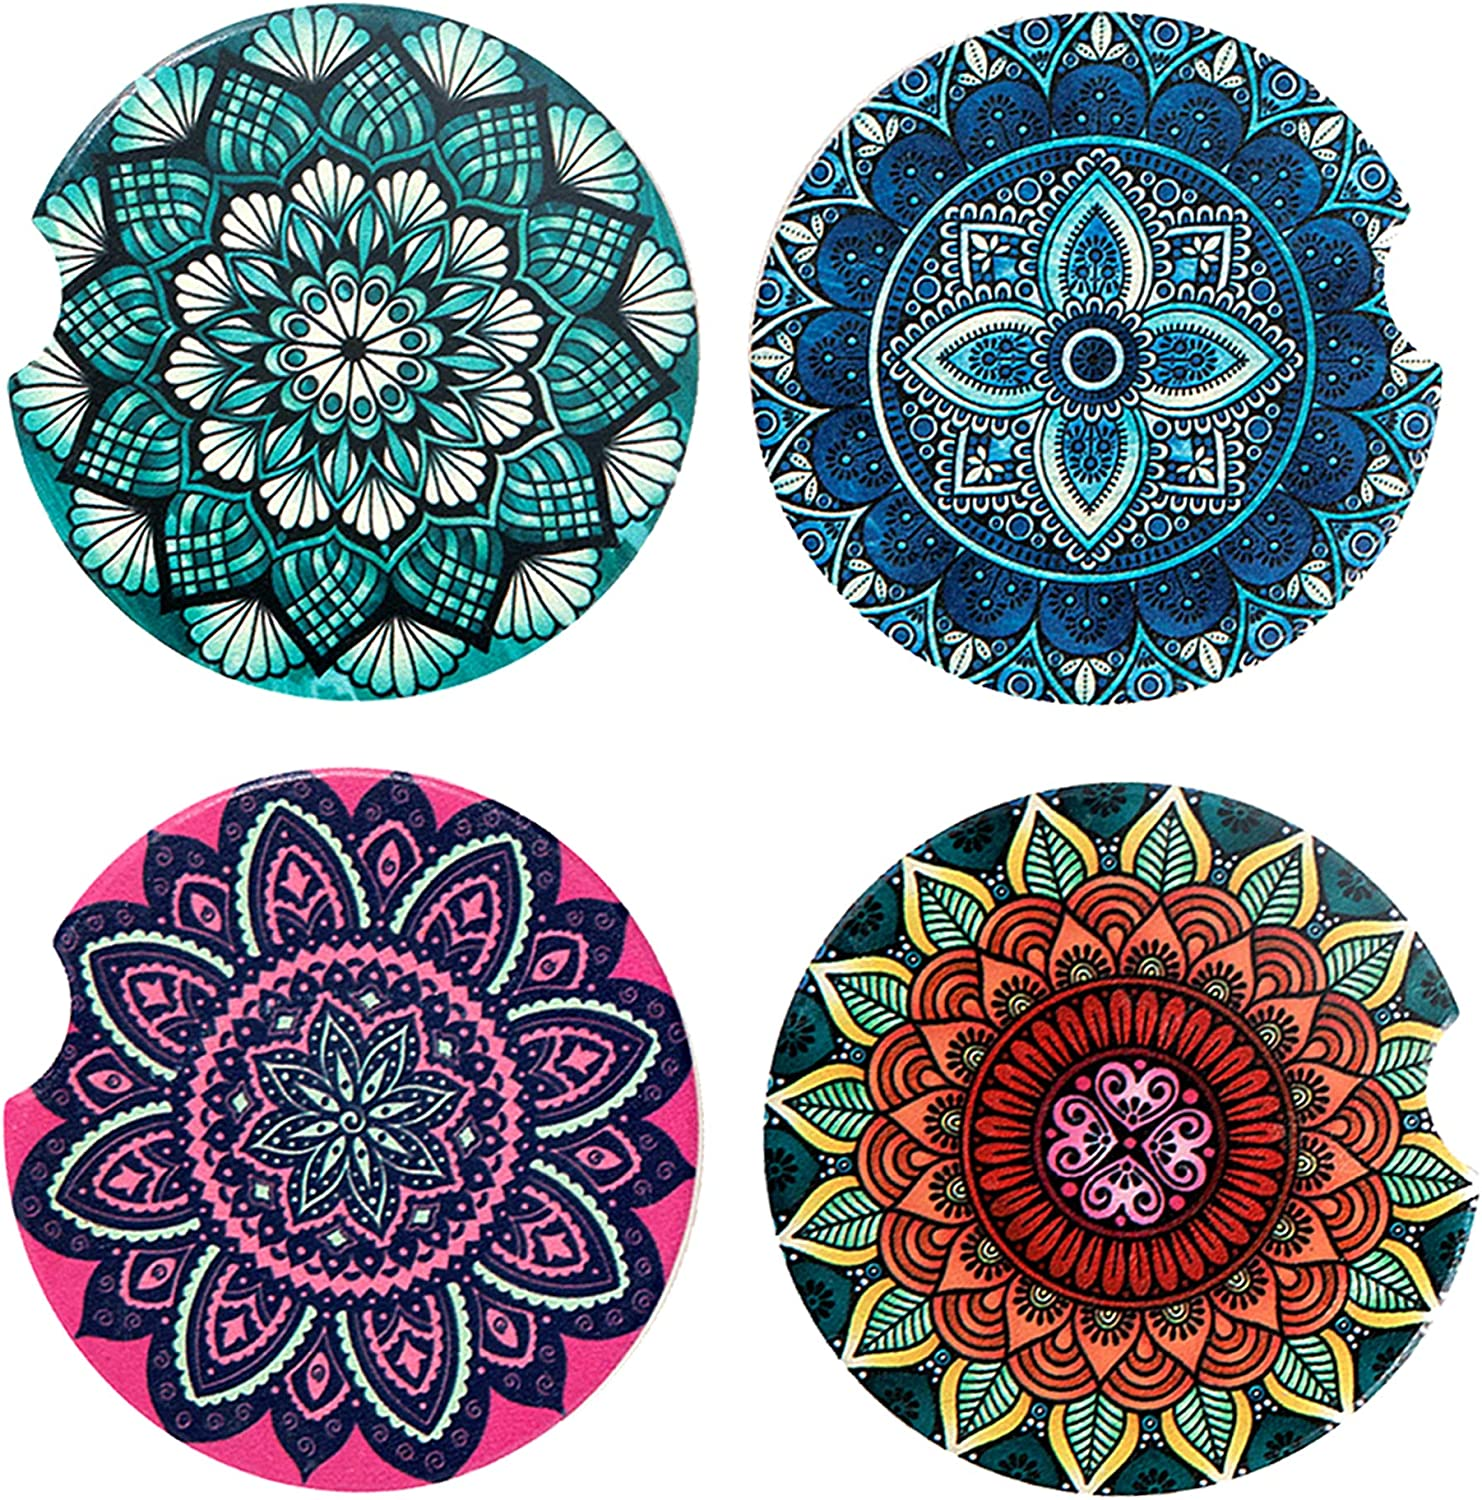 Amazon Com 4 Pack Car Coasters Ceramic Coasters Mandala Styles Coaster Sets With Absorbent Stone Auto Cup Holder Coasters For Women Men Drinks Car Accessories Small 2 56 Mandala Kitchen Dining